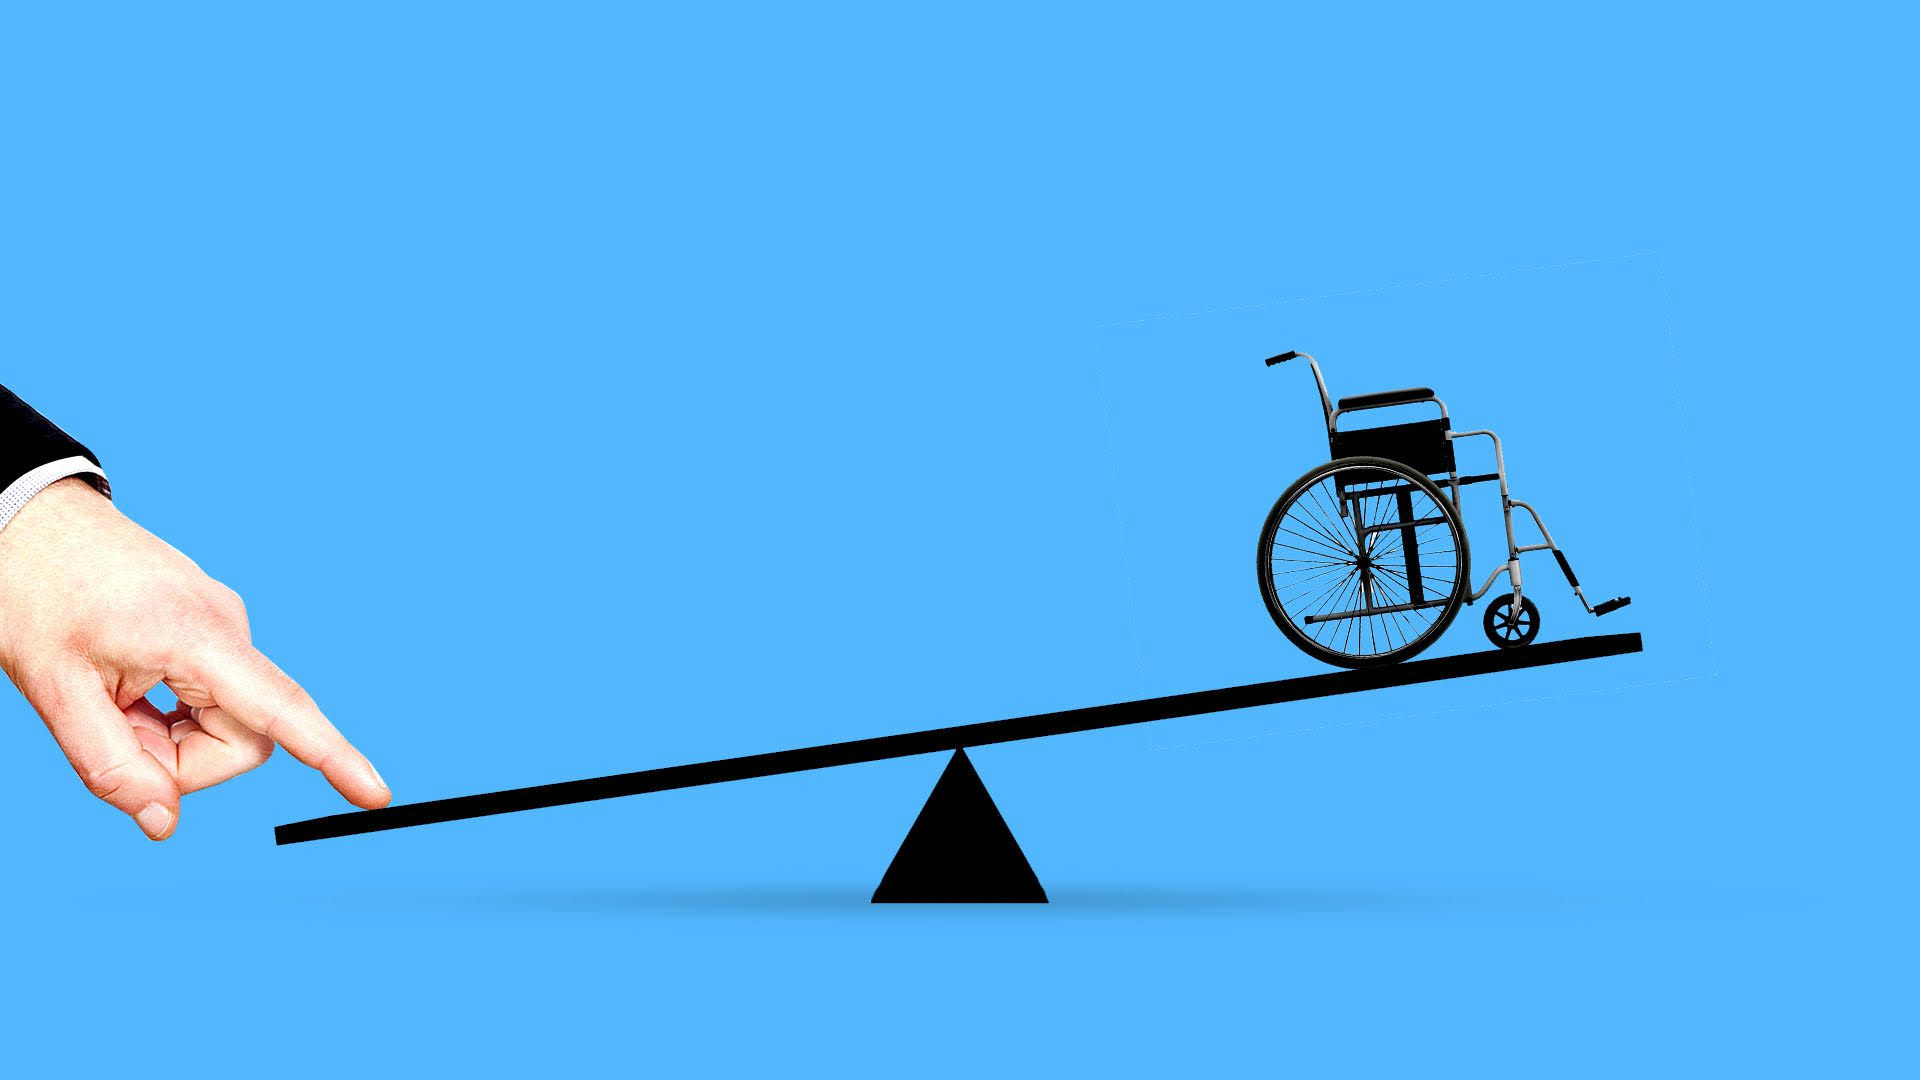 Illustration of a wheelchair on one side of a seesaw with a hand pressing down the other side